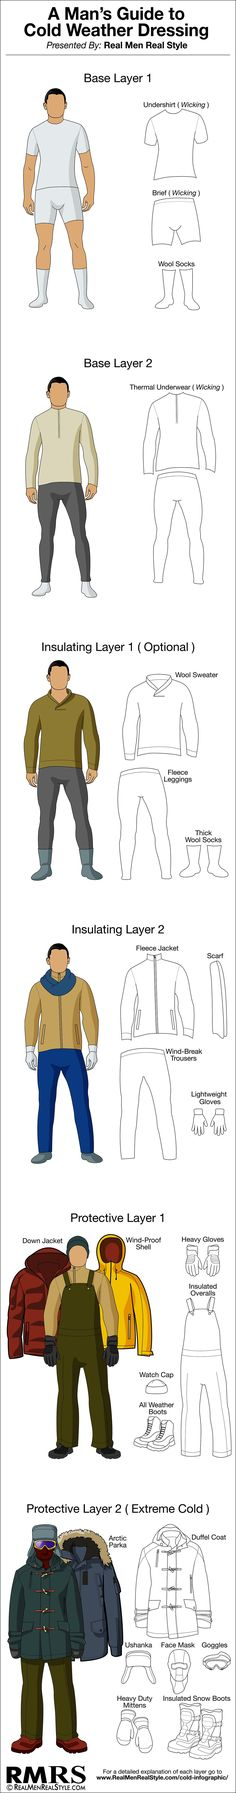 How To Dress Warm In Cold Weather Infographic | Base Layer | Insulating Layers |Outer Protection